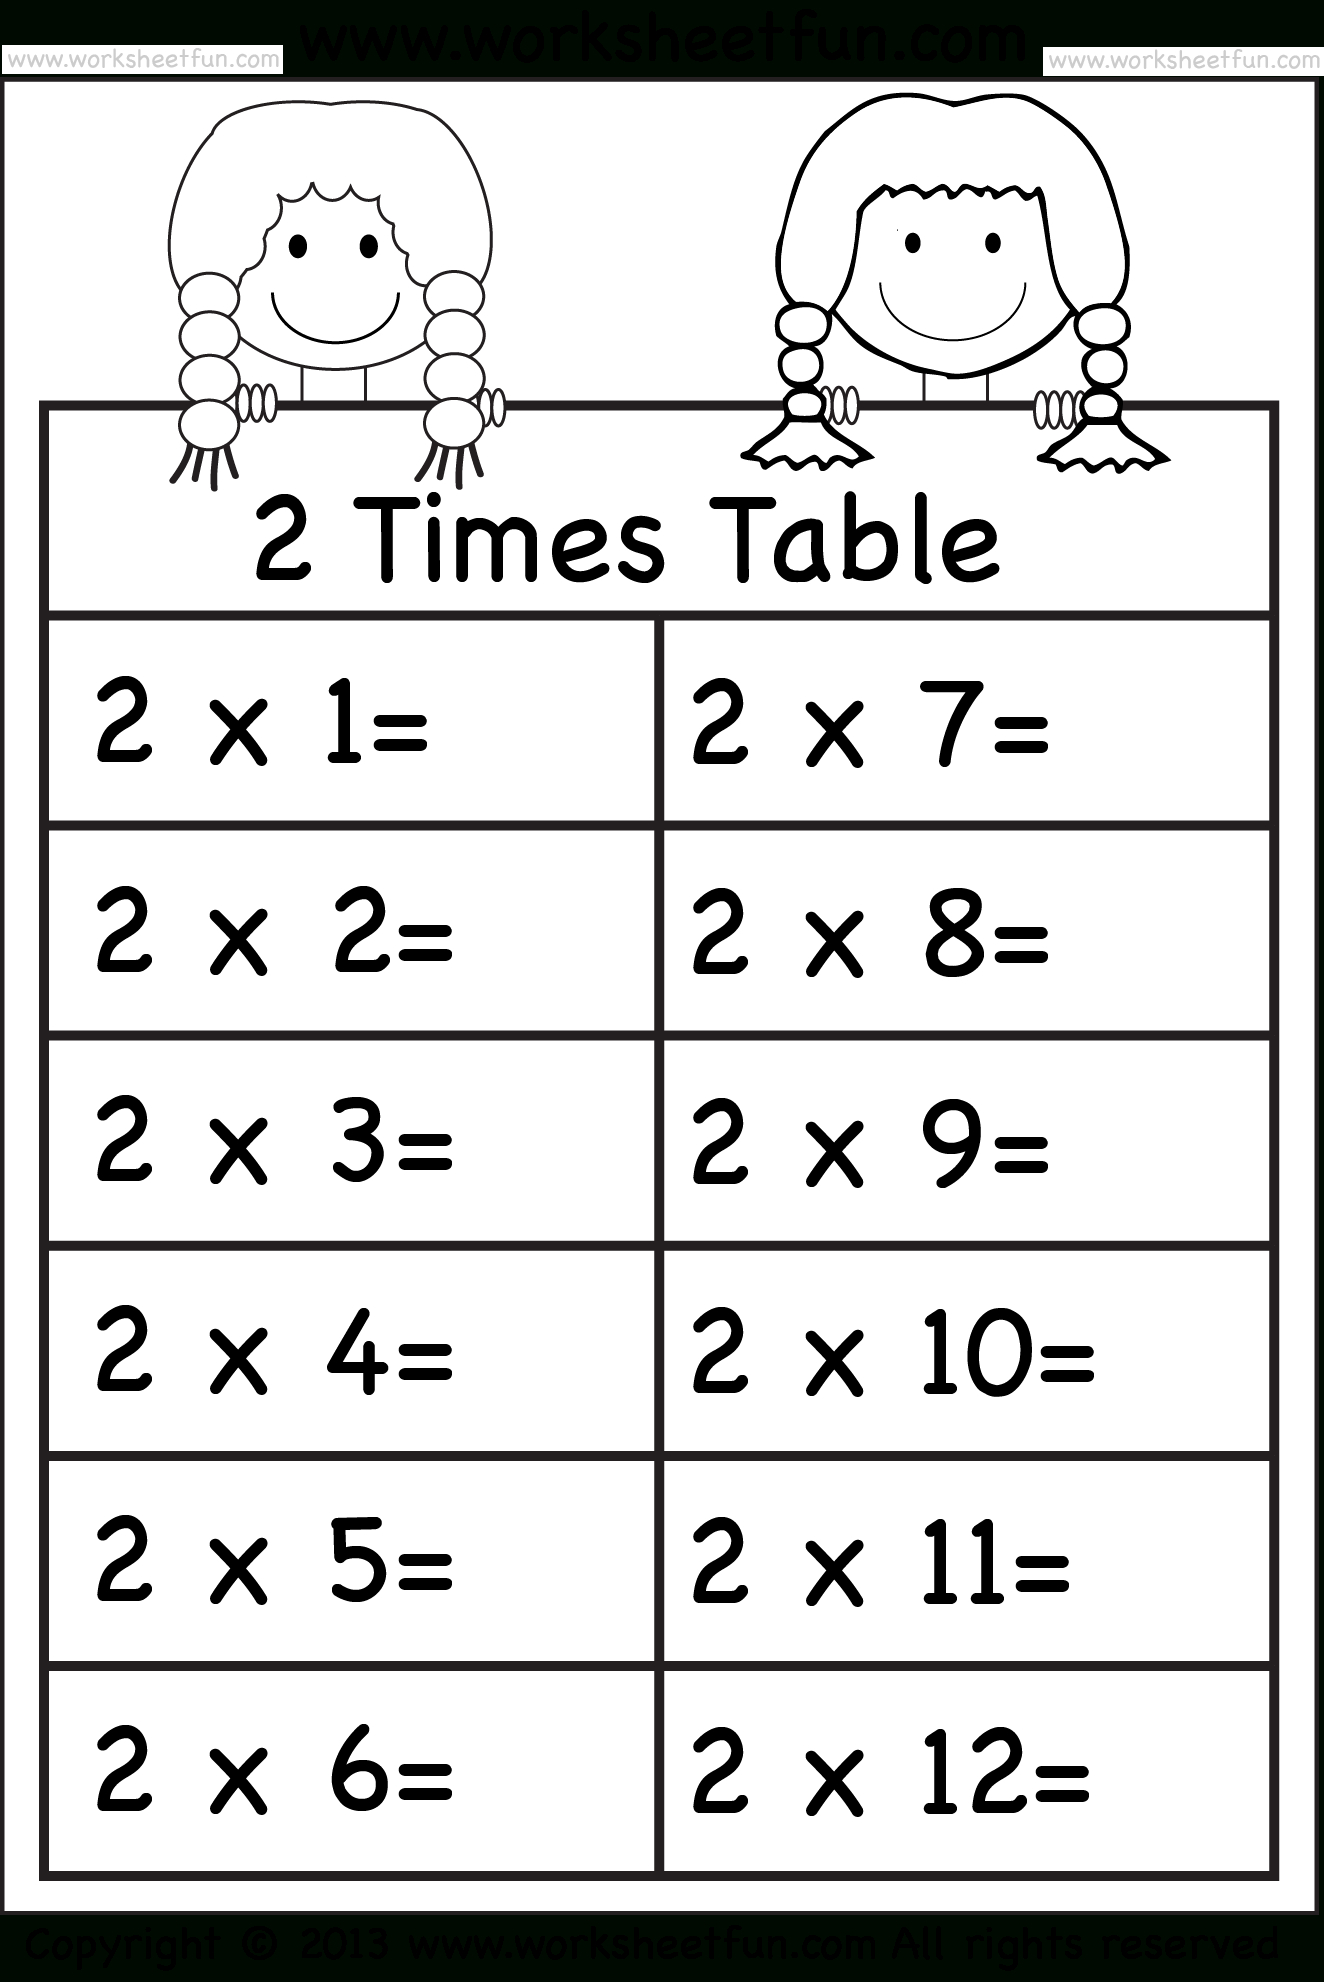 Times Tables Worksheets – 2, 3, 4, 5, 6, 7, 8, 9, 10, 11 And inside Multiplication Worksheets 5 Times Tables